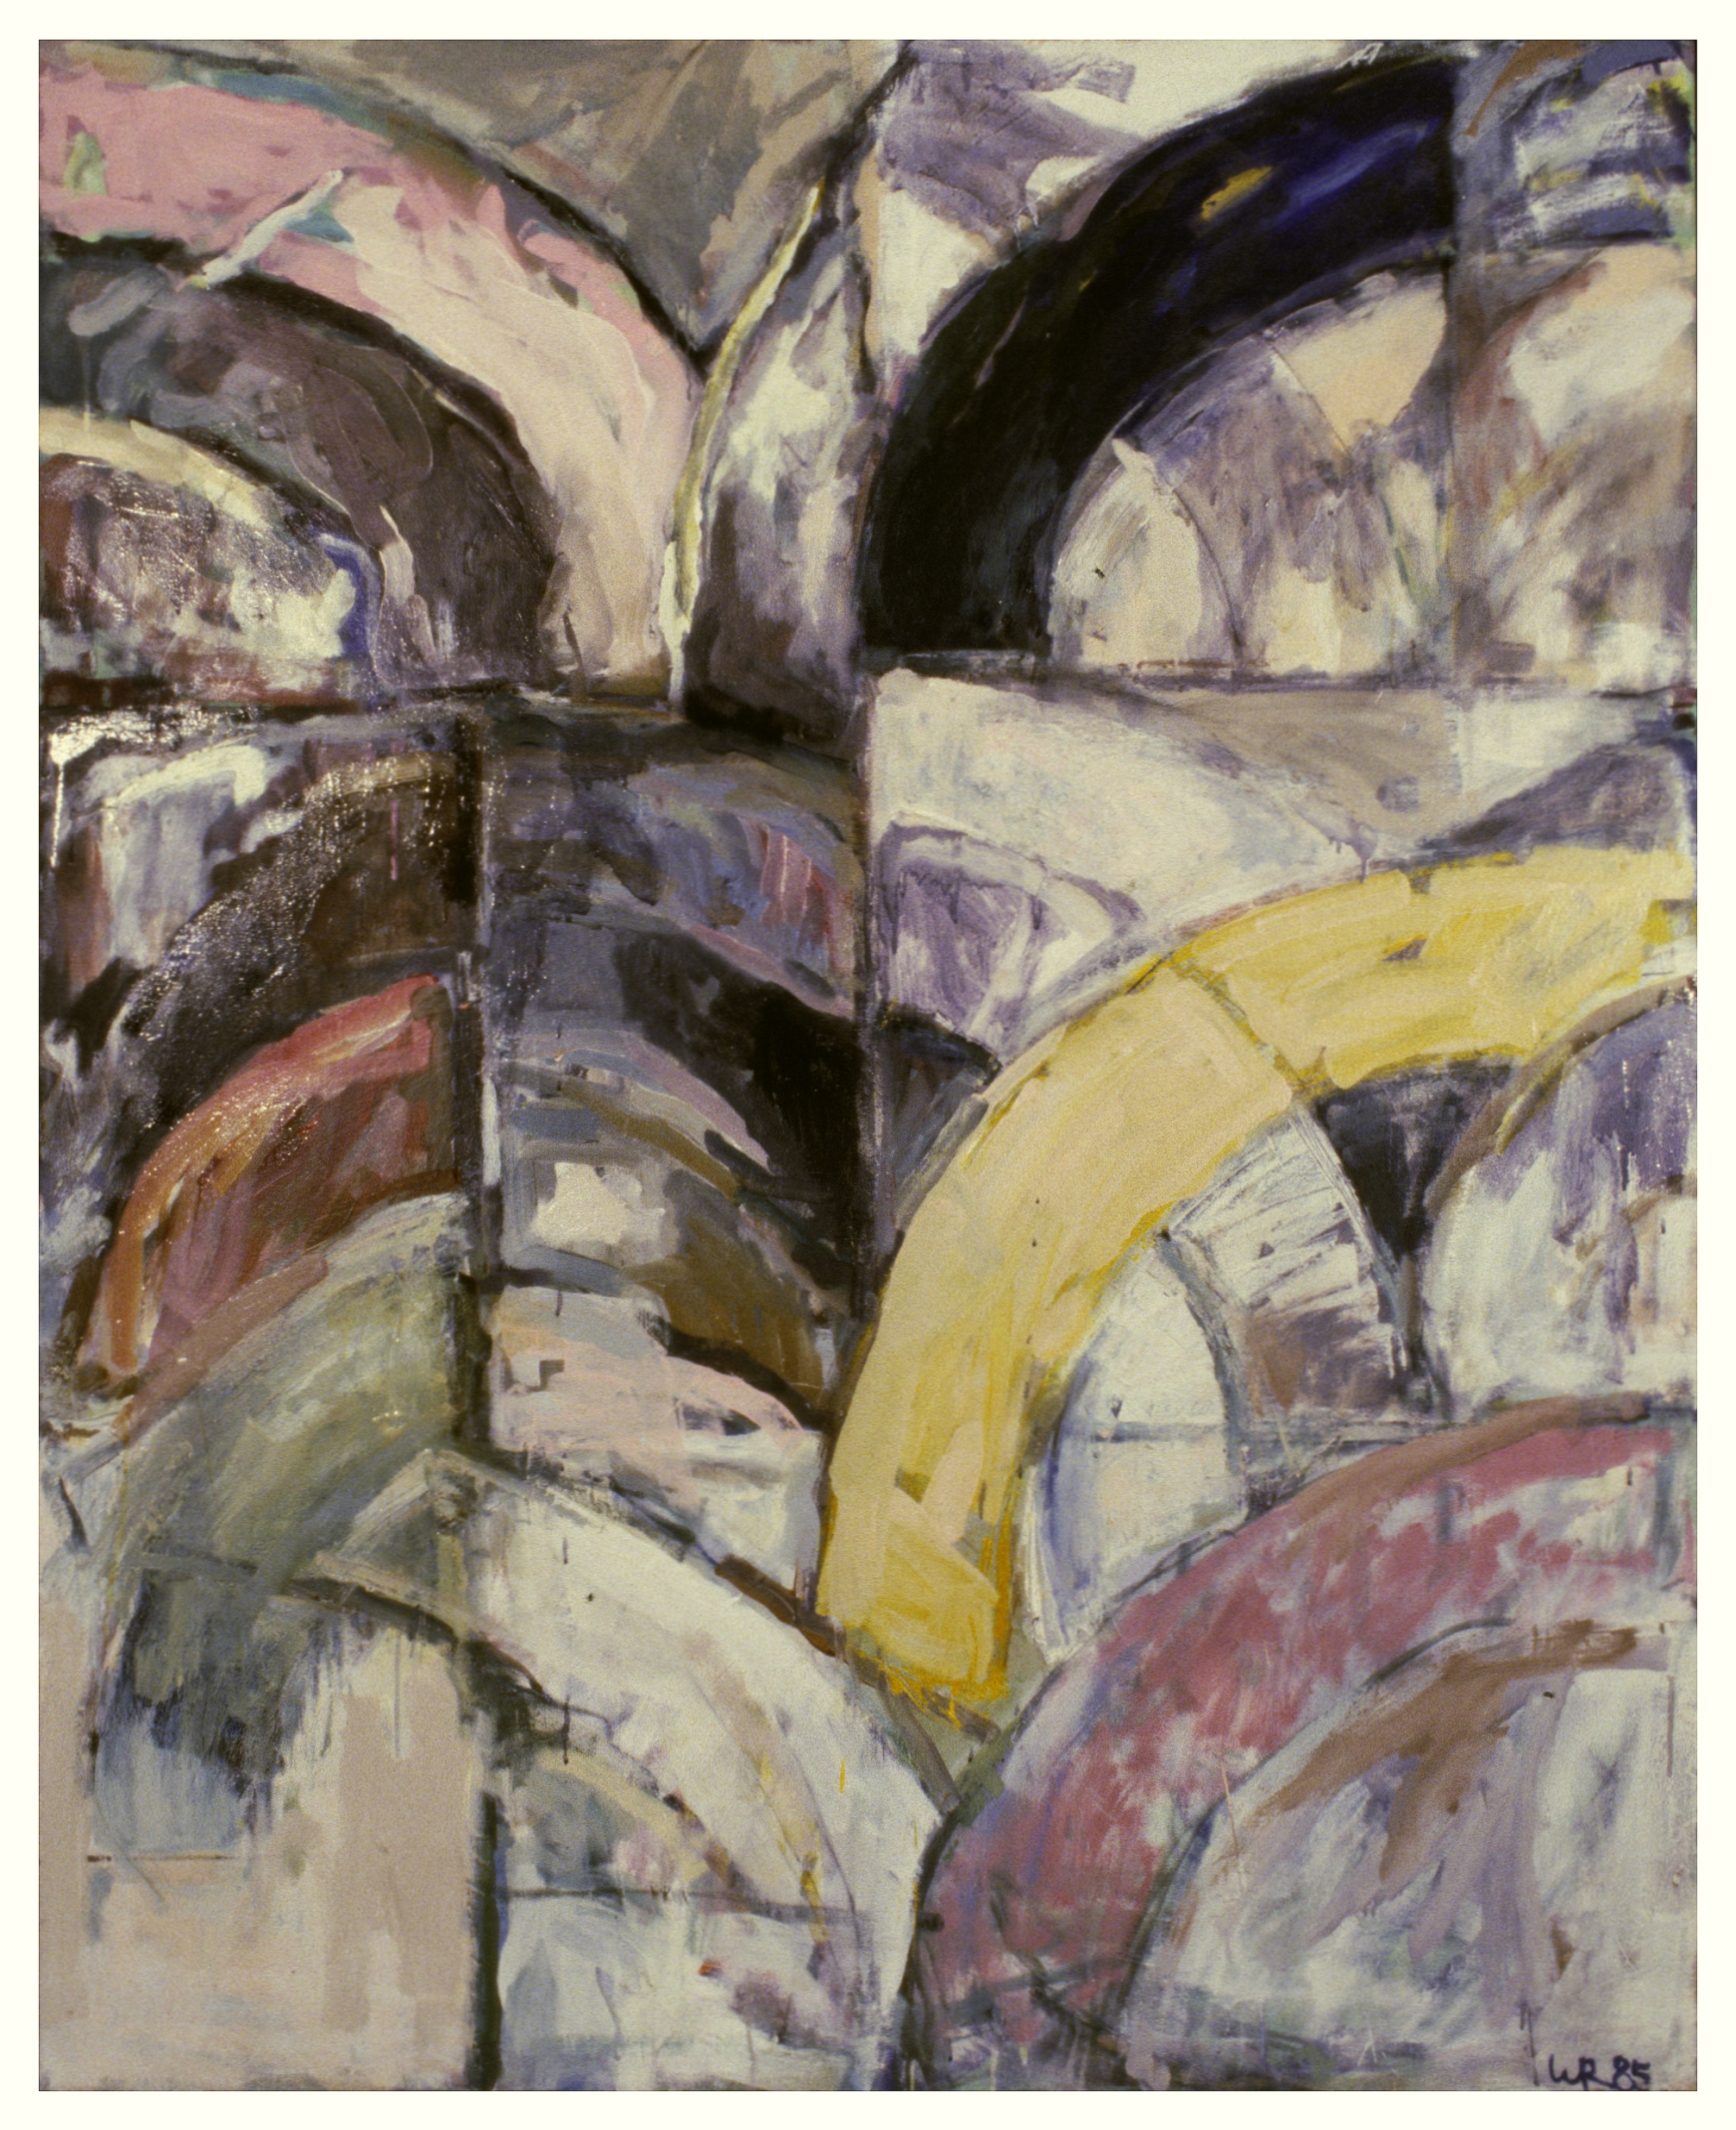 Untitled 1985 - oil